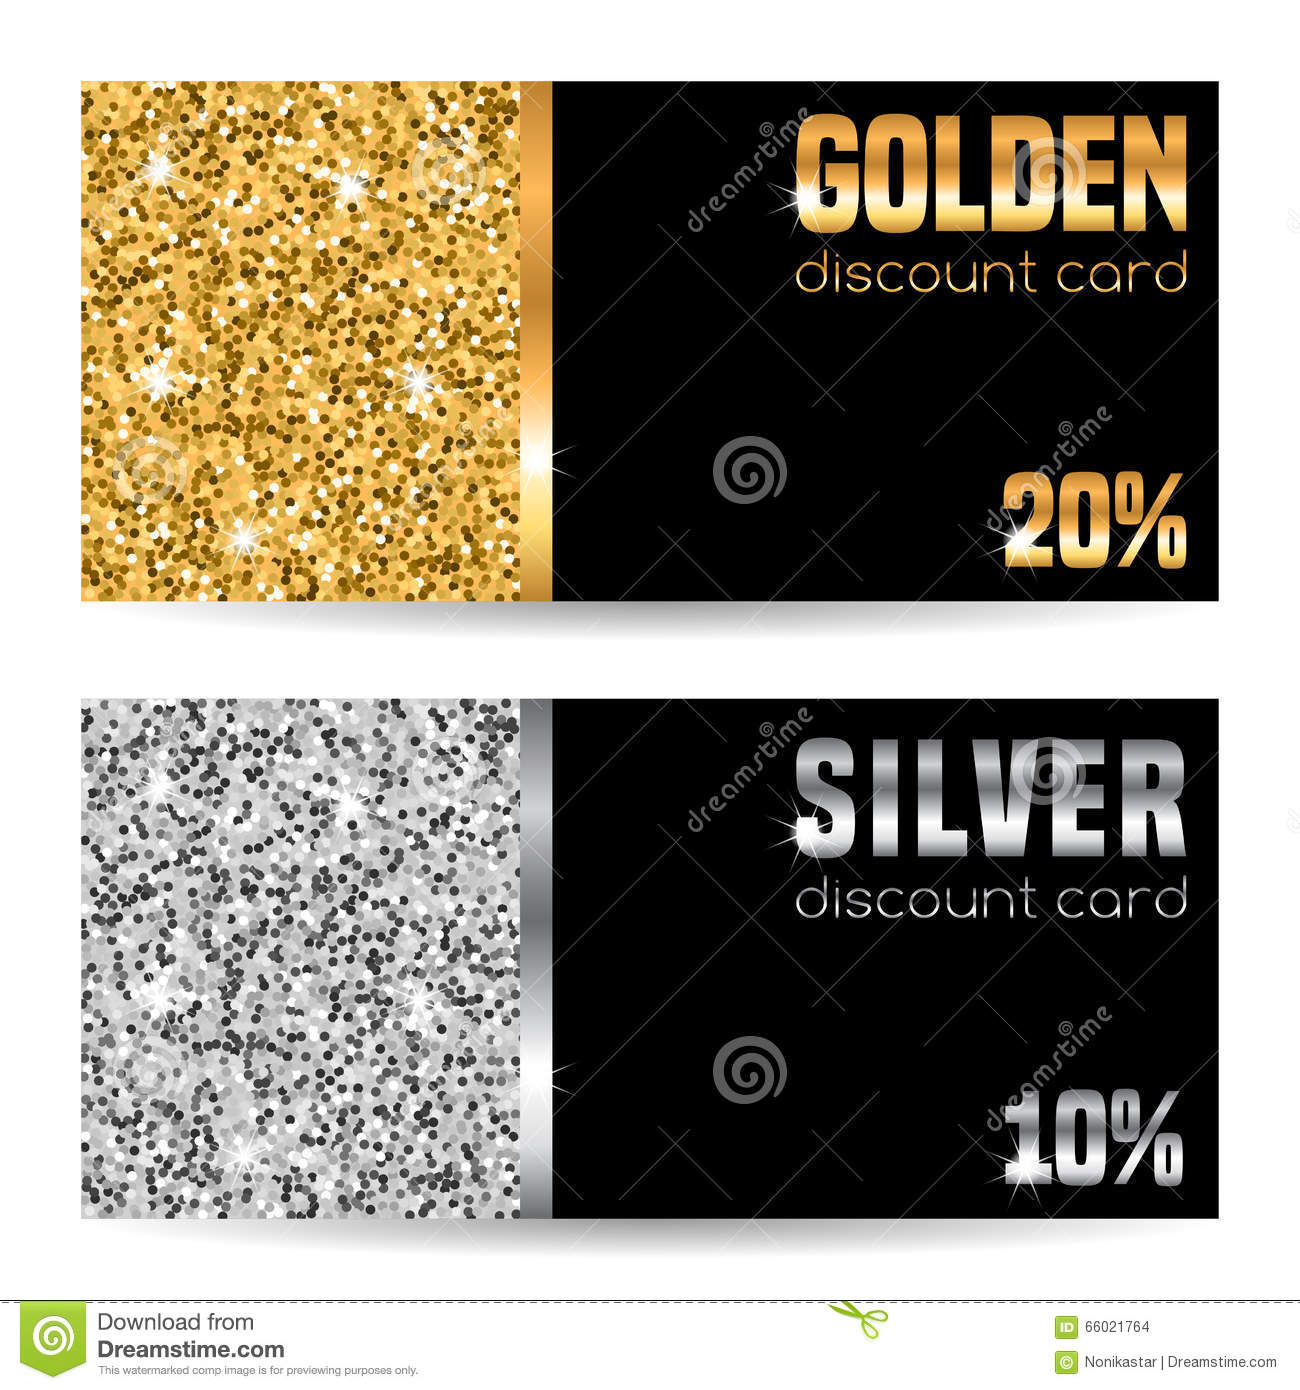 Discount card template stock vector. Image of metal, dust ...